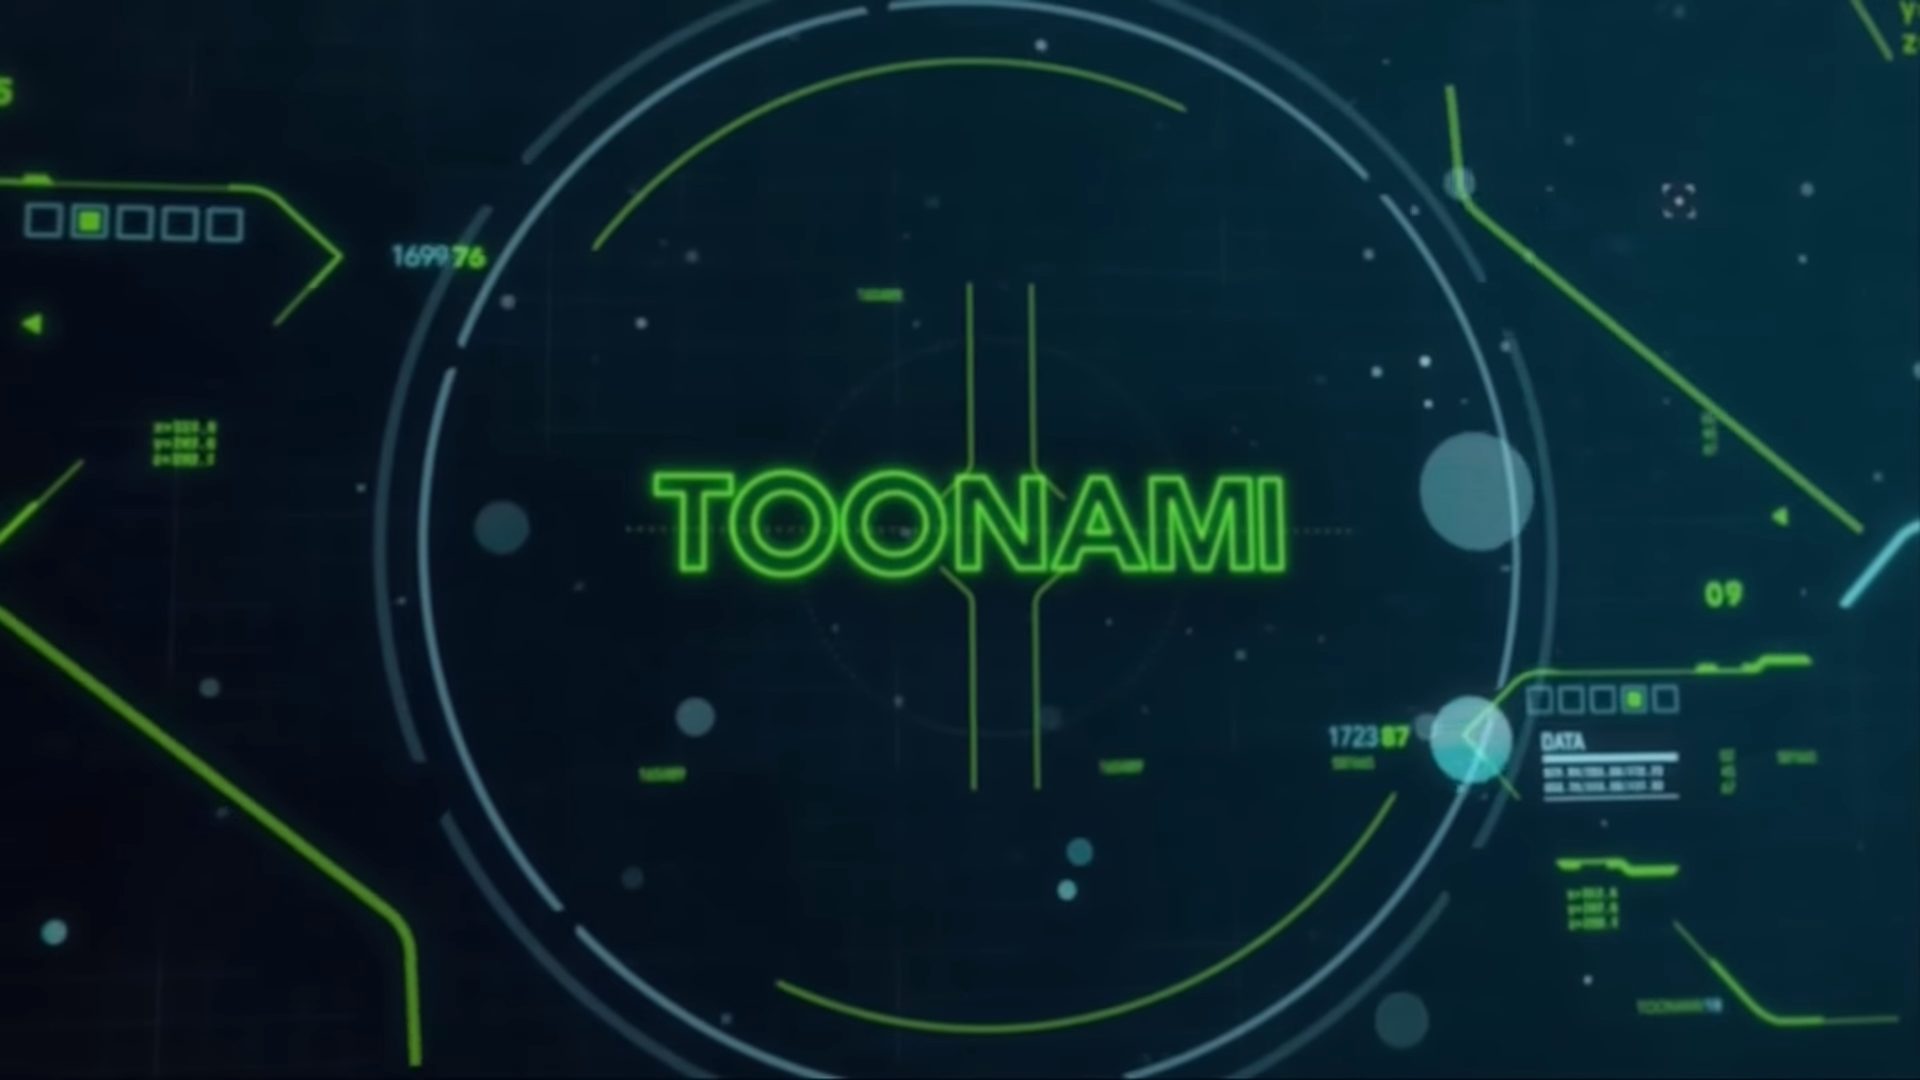 Toonami | Toonami Wiki | FANDOM powered by Wikia